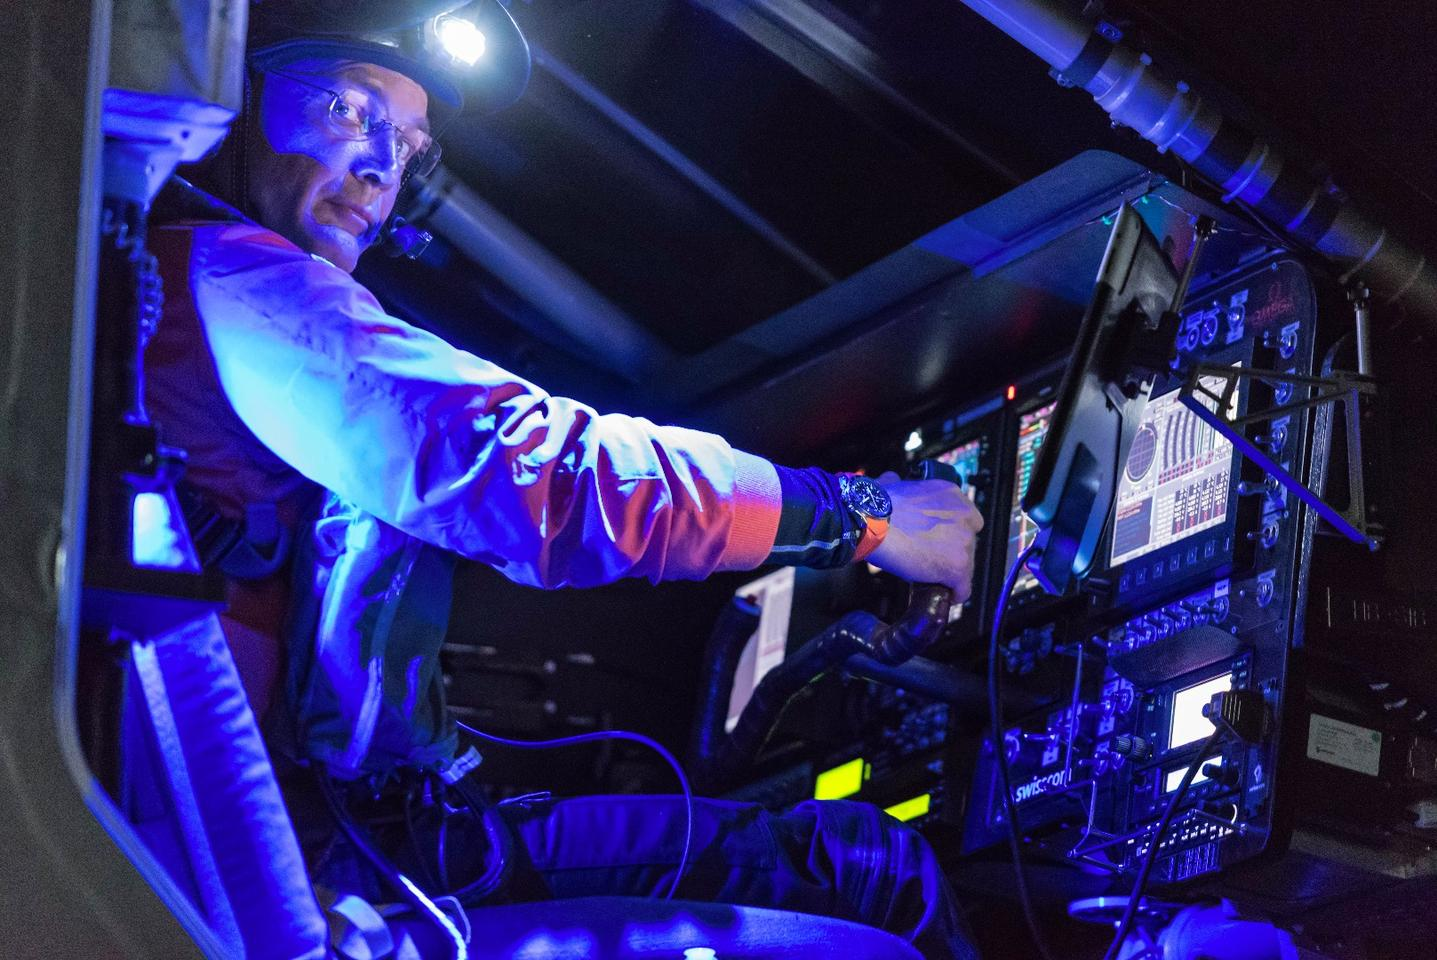 Bertrand Piccard performs a training flight with Solar Impulse 2 in Hawaii